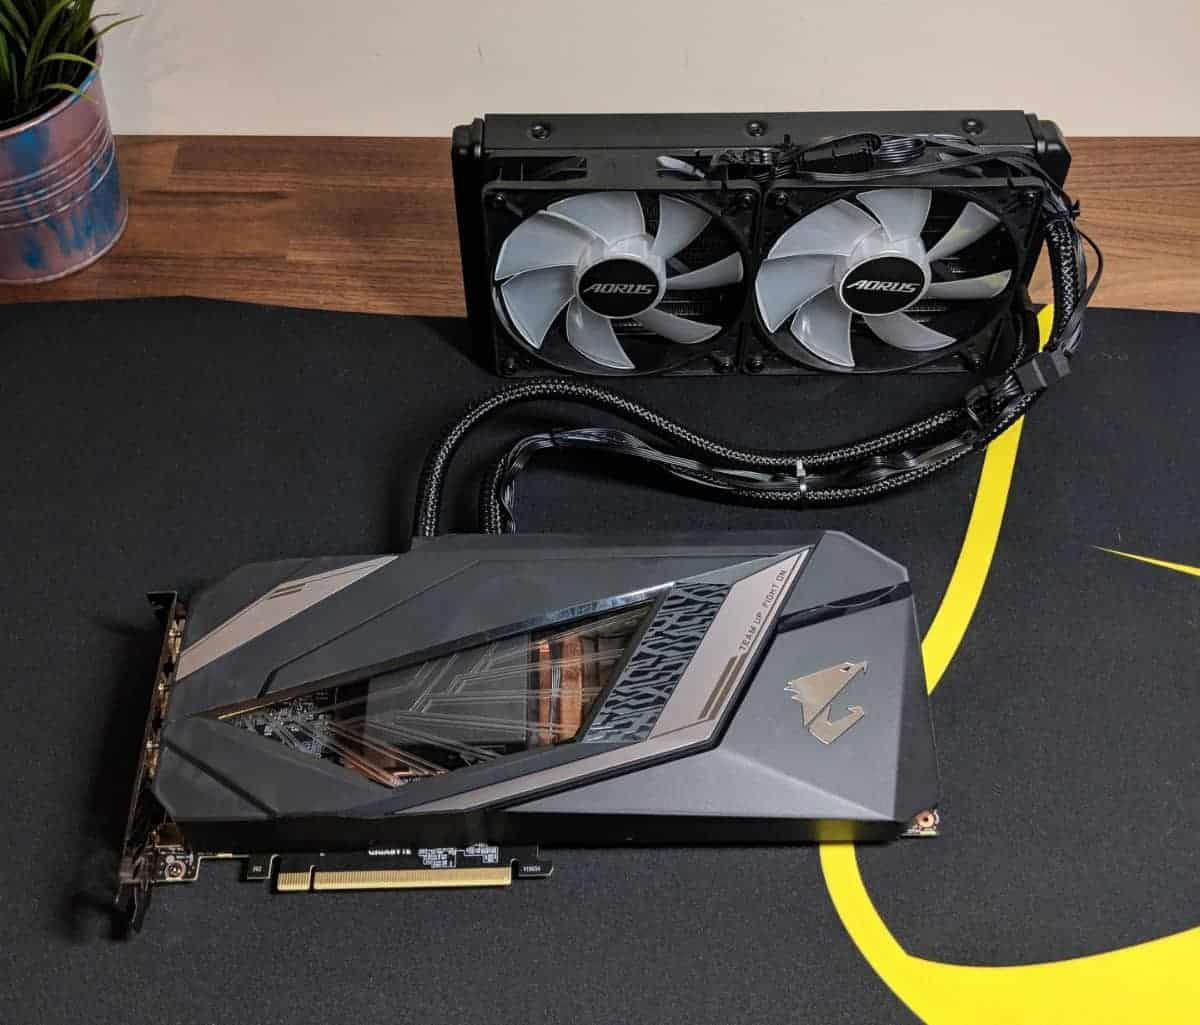 Gigabyte-2080-Xtreme-Waterforce-Photos-32 Gigabyte AORUS RTX 2080 Xtreme Waterforce Review